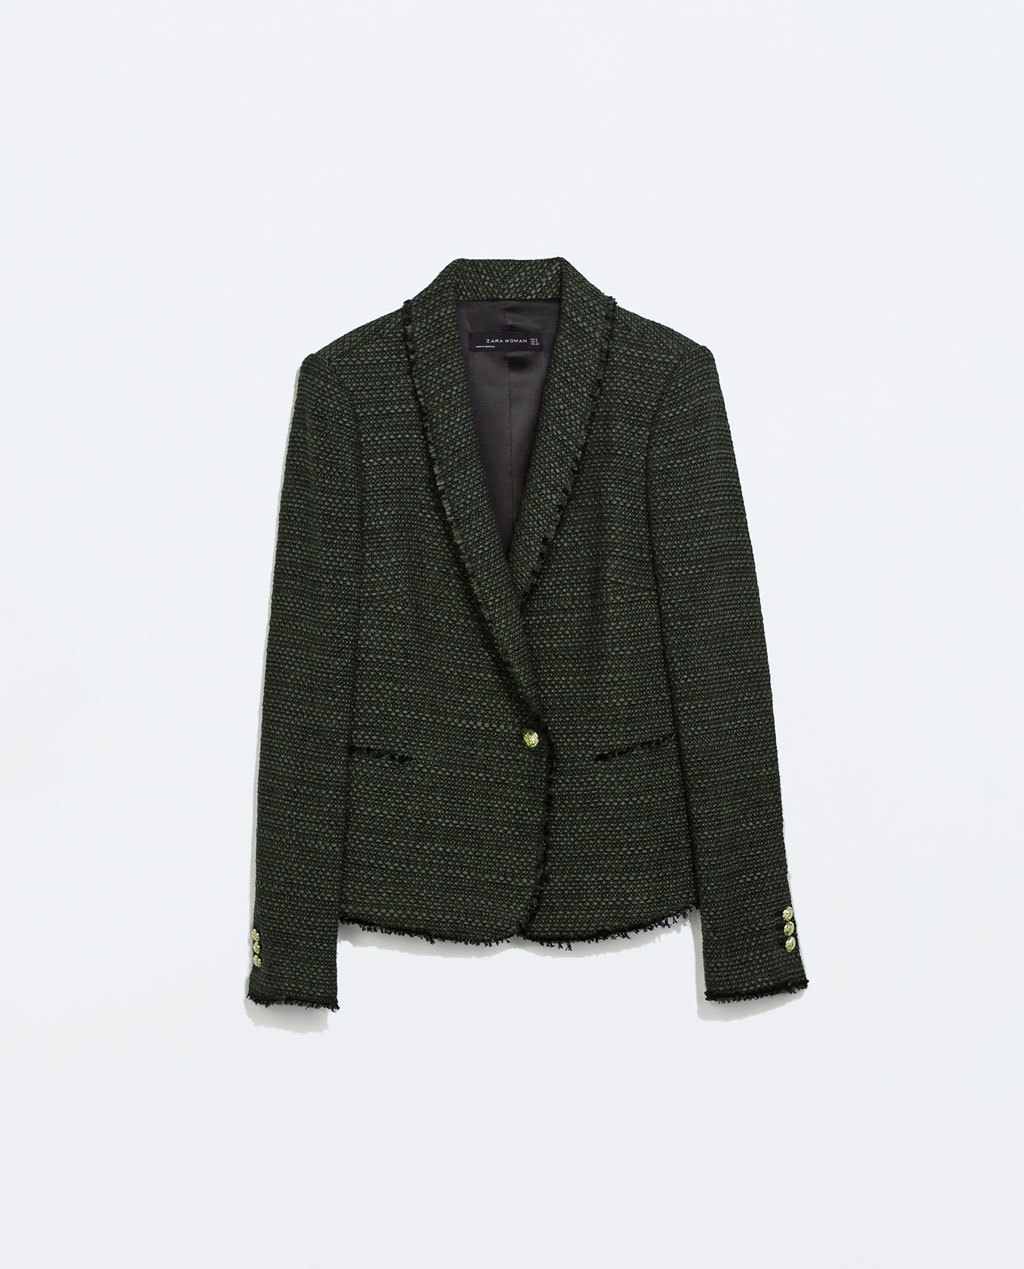 Fantasy Buttoned Blazer - style: single breasted blazer; collar: shawl/waterfall; pattern: herringbone/tweed; predominant colour: dark green; secondary colour: black; occasions: casual, creative work; length: standard; fit: tailored/fitted; fibres: cotton - stretch; sleeve length: long sleeve; sleeve style: standard; collar break: medium; pattern type: fabric; pattern size: standard; texture group: tweed - light/midweight; season: a/w 2014